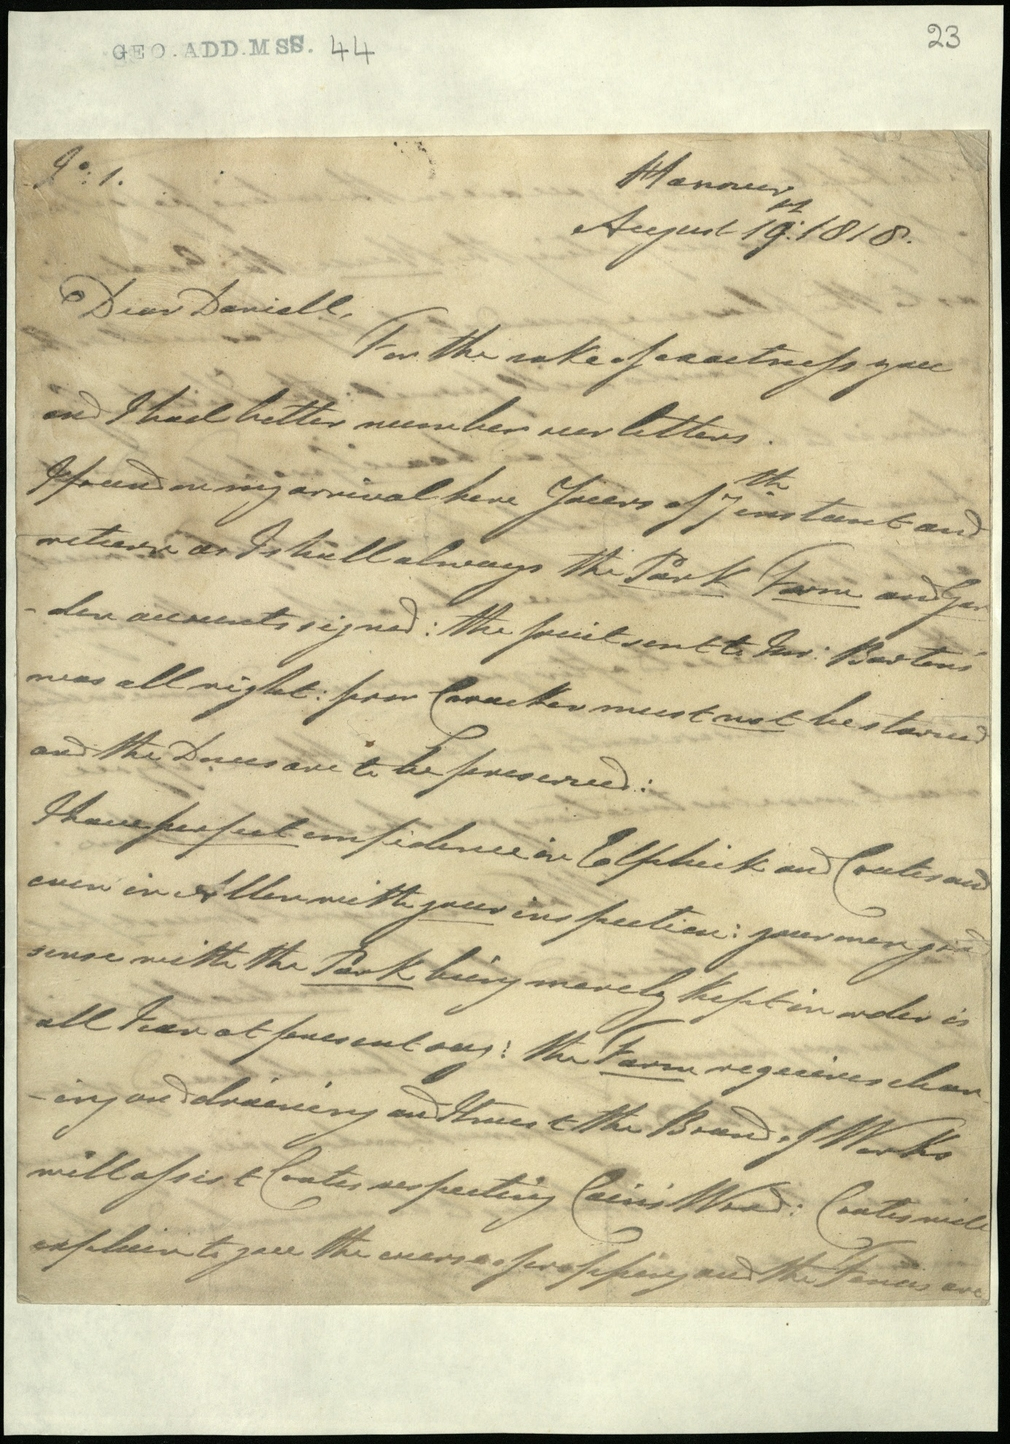 Letter from the Duke of Clarence to J.W.Daniell